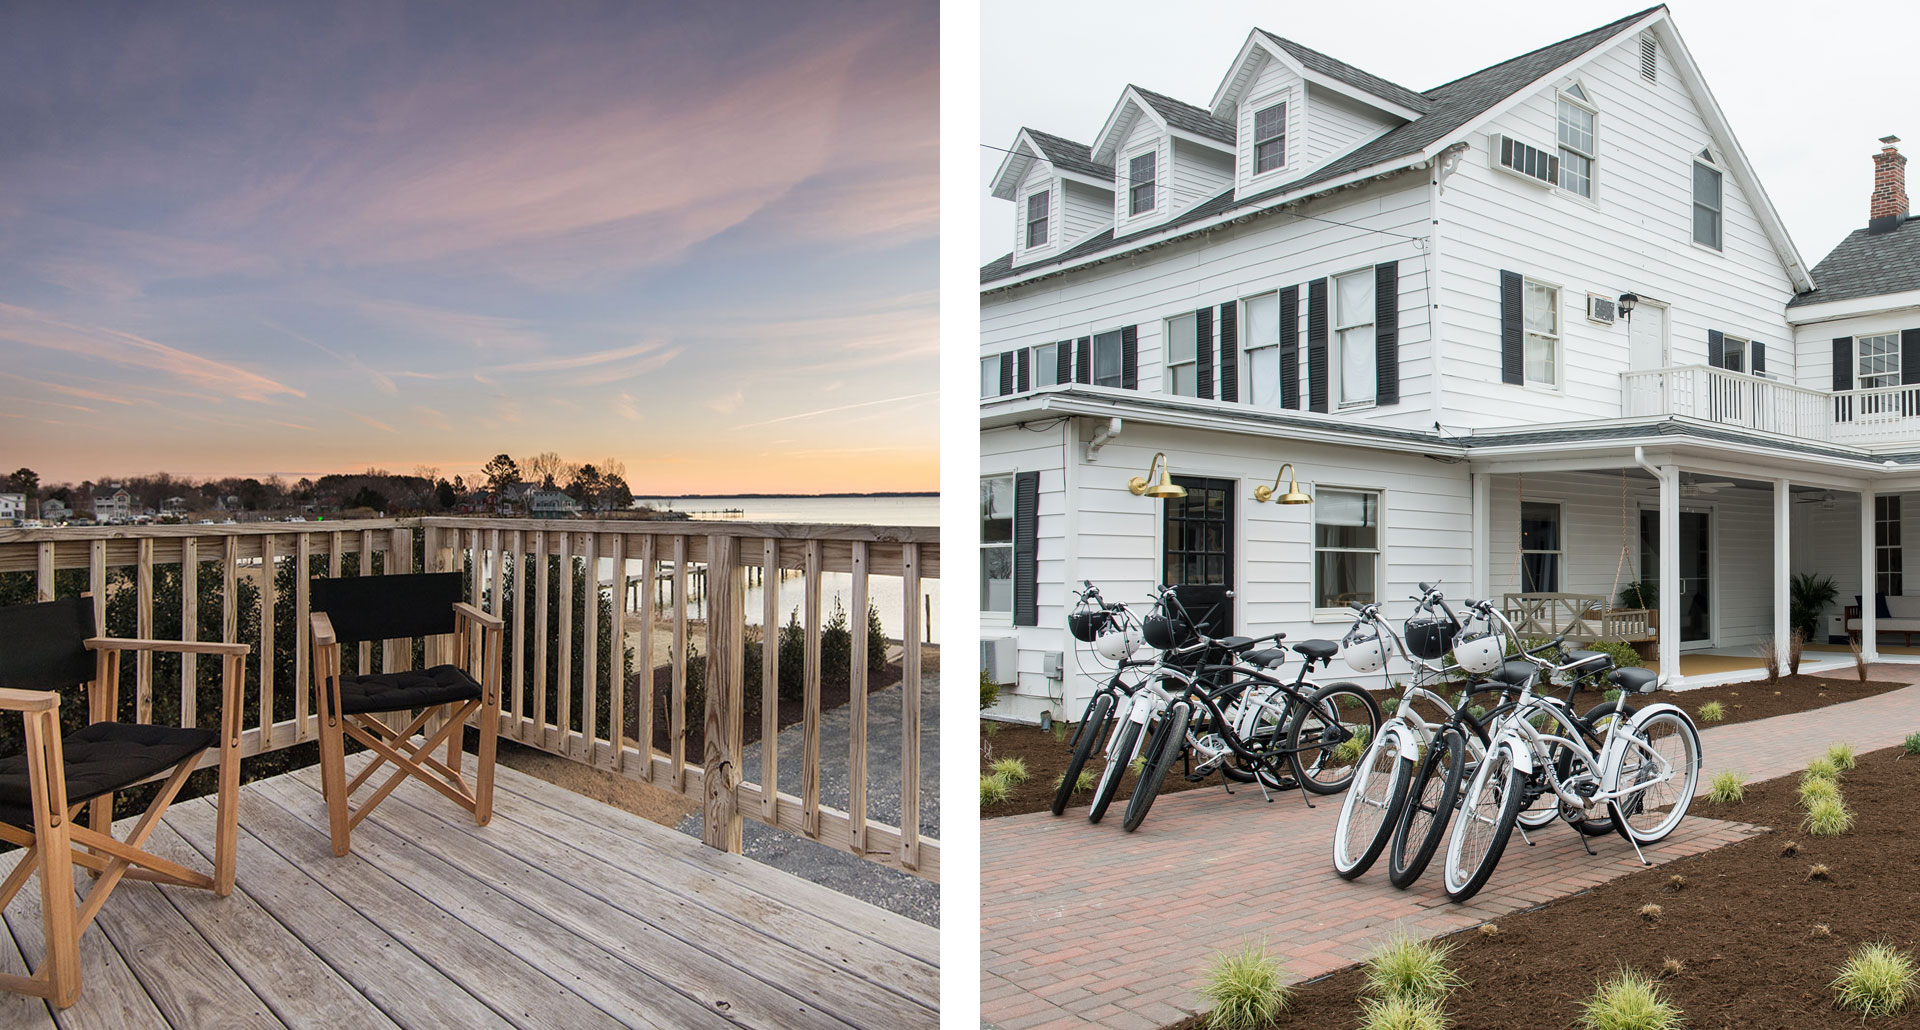 Wylder Hotel Tilghman Island - a boutique hotel in Chesapeake Bay